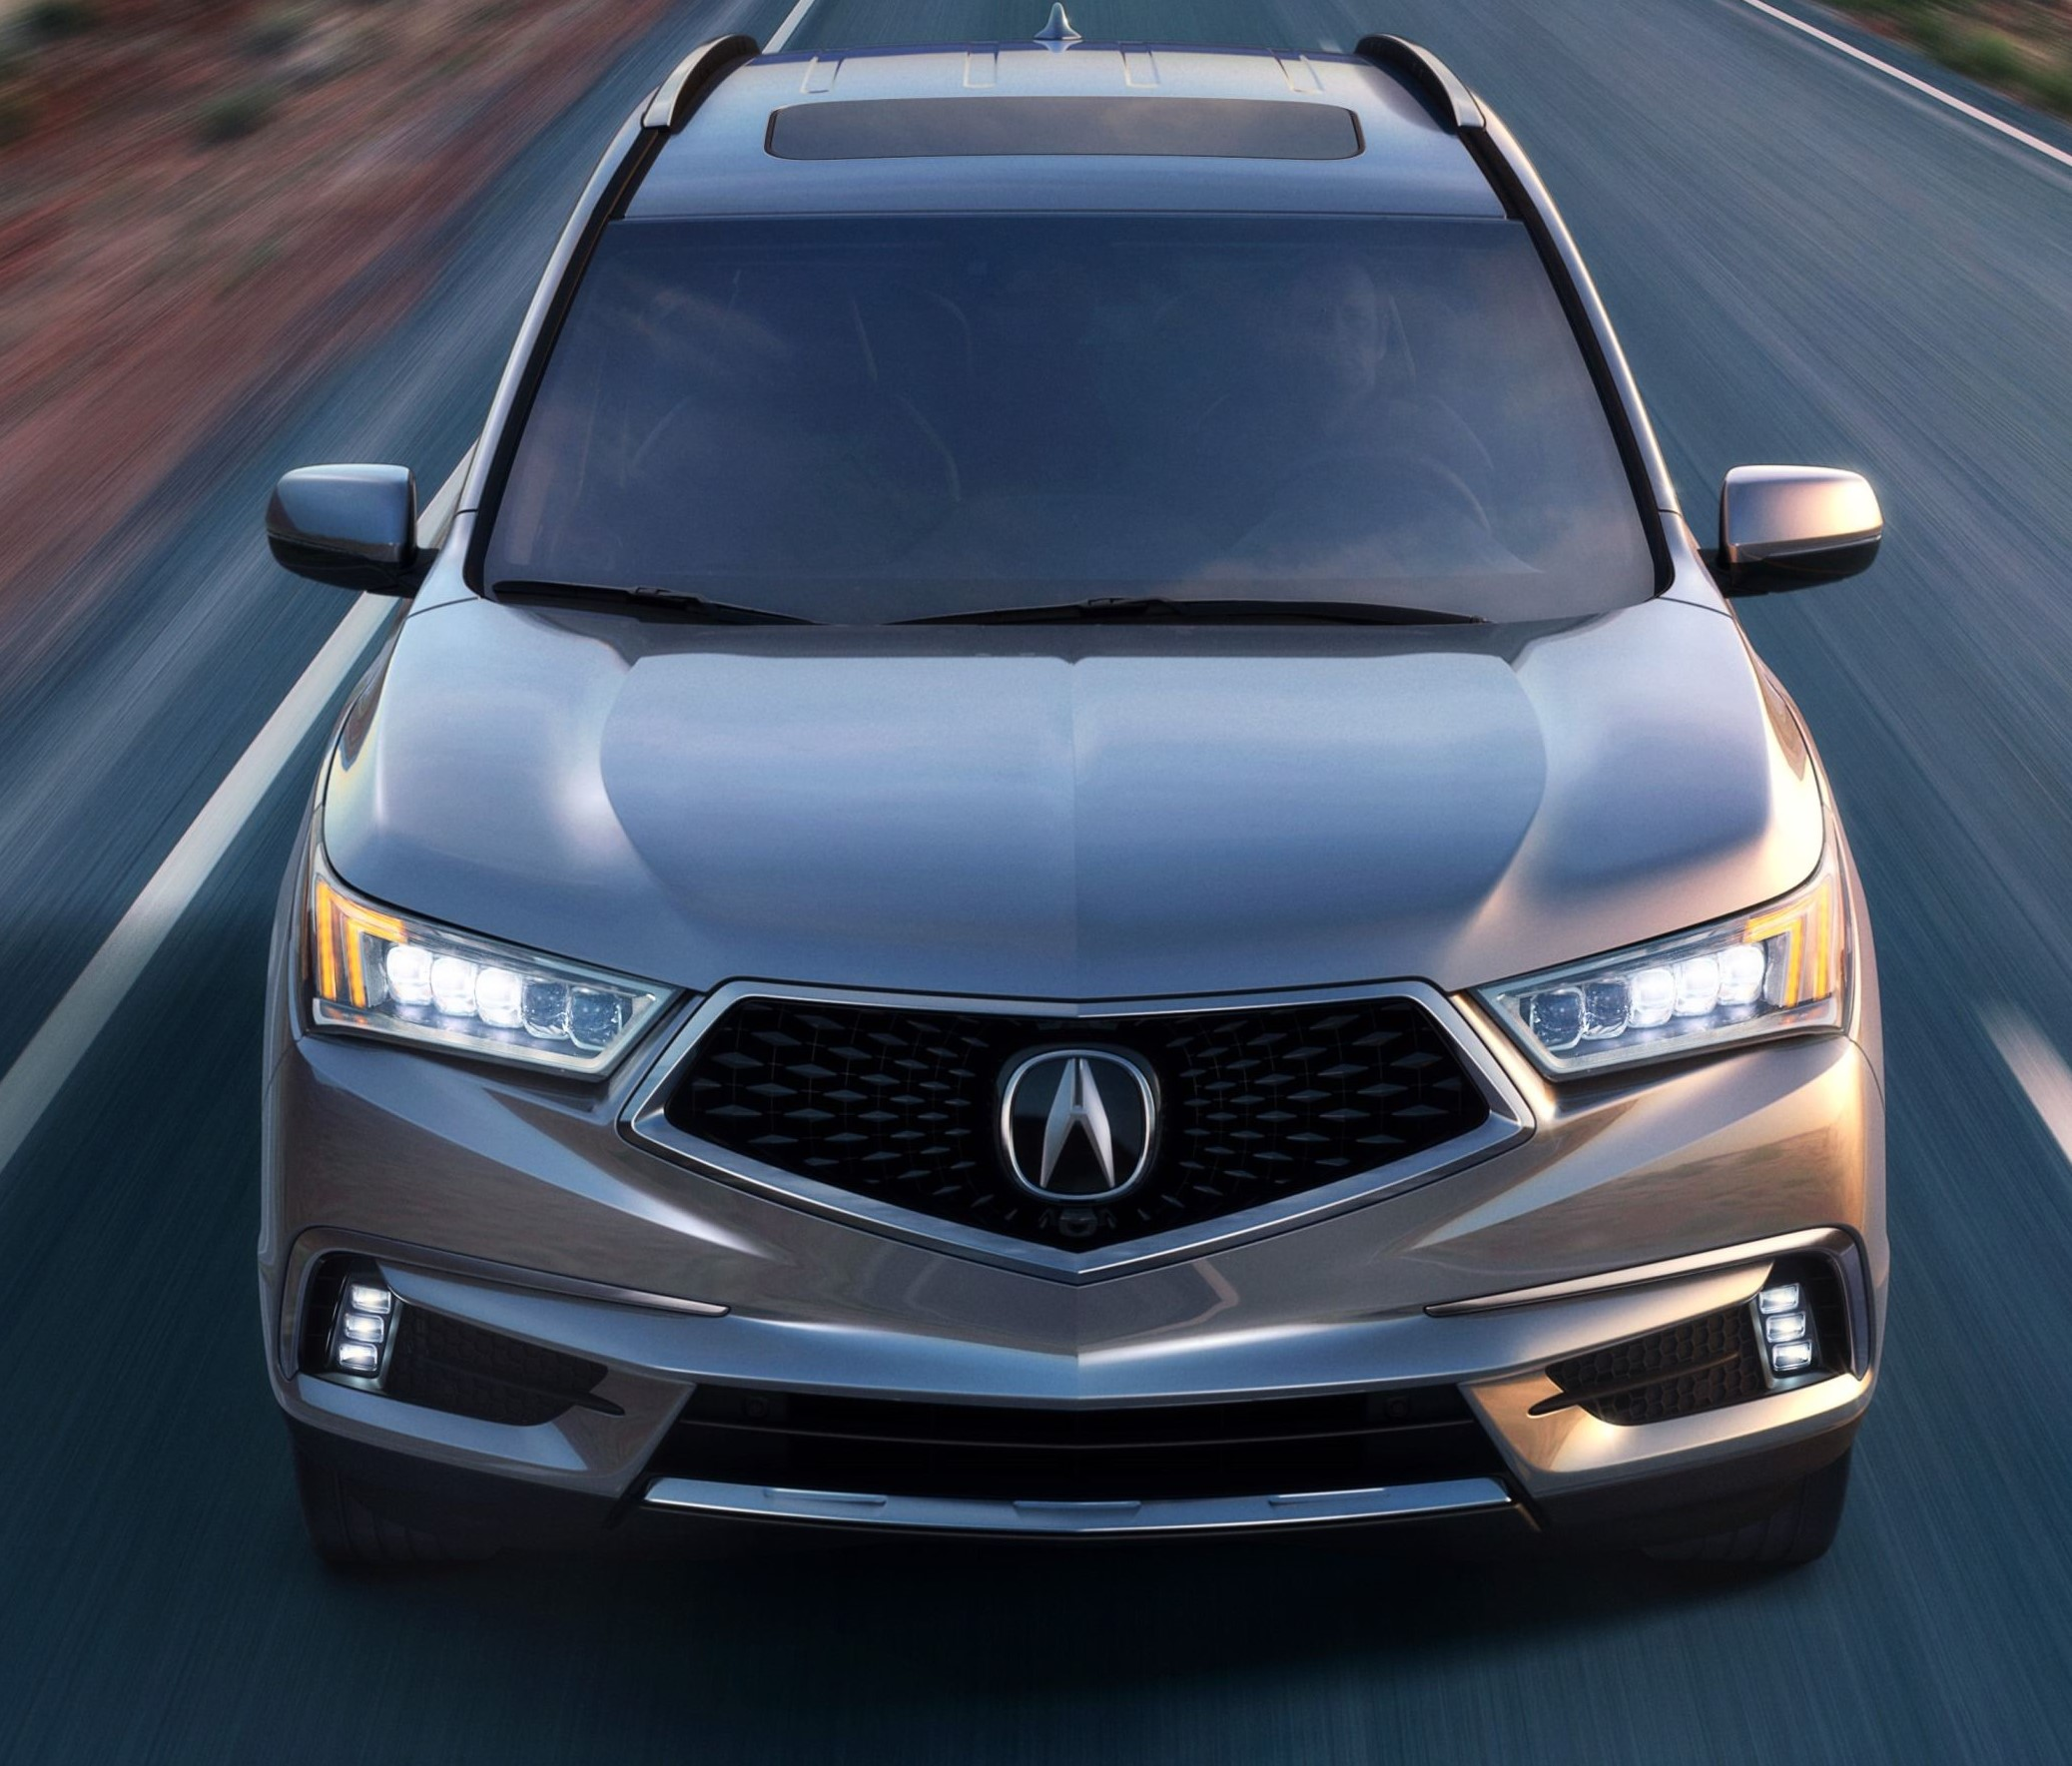 2017 Acura Mdx For Sale: 2017 ACURA MDX SPORT HYBRID ELECTRIC